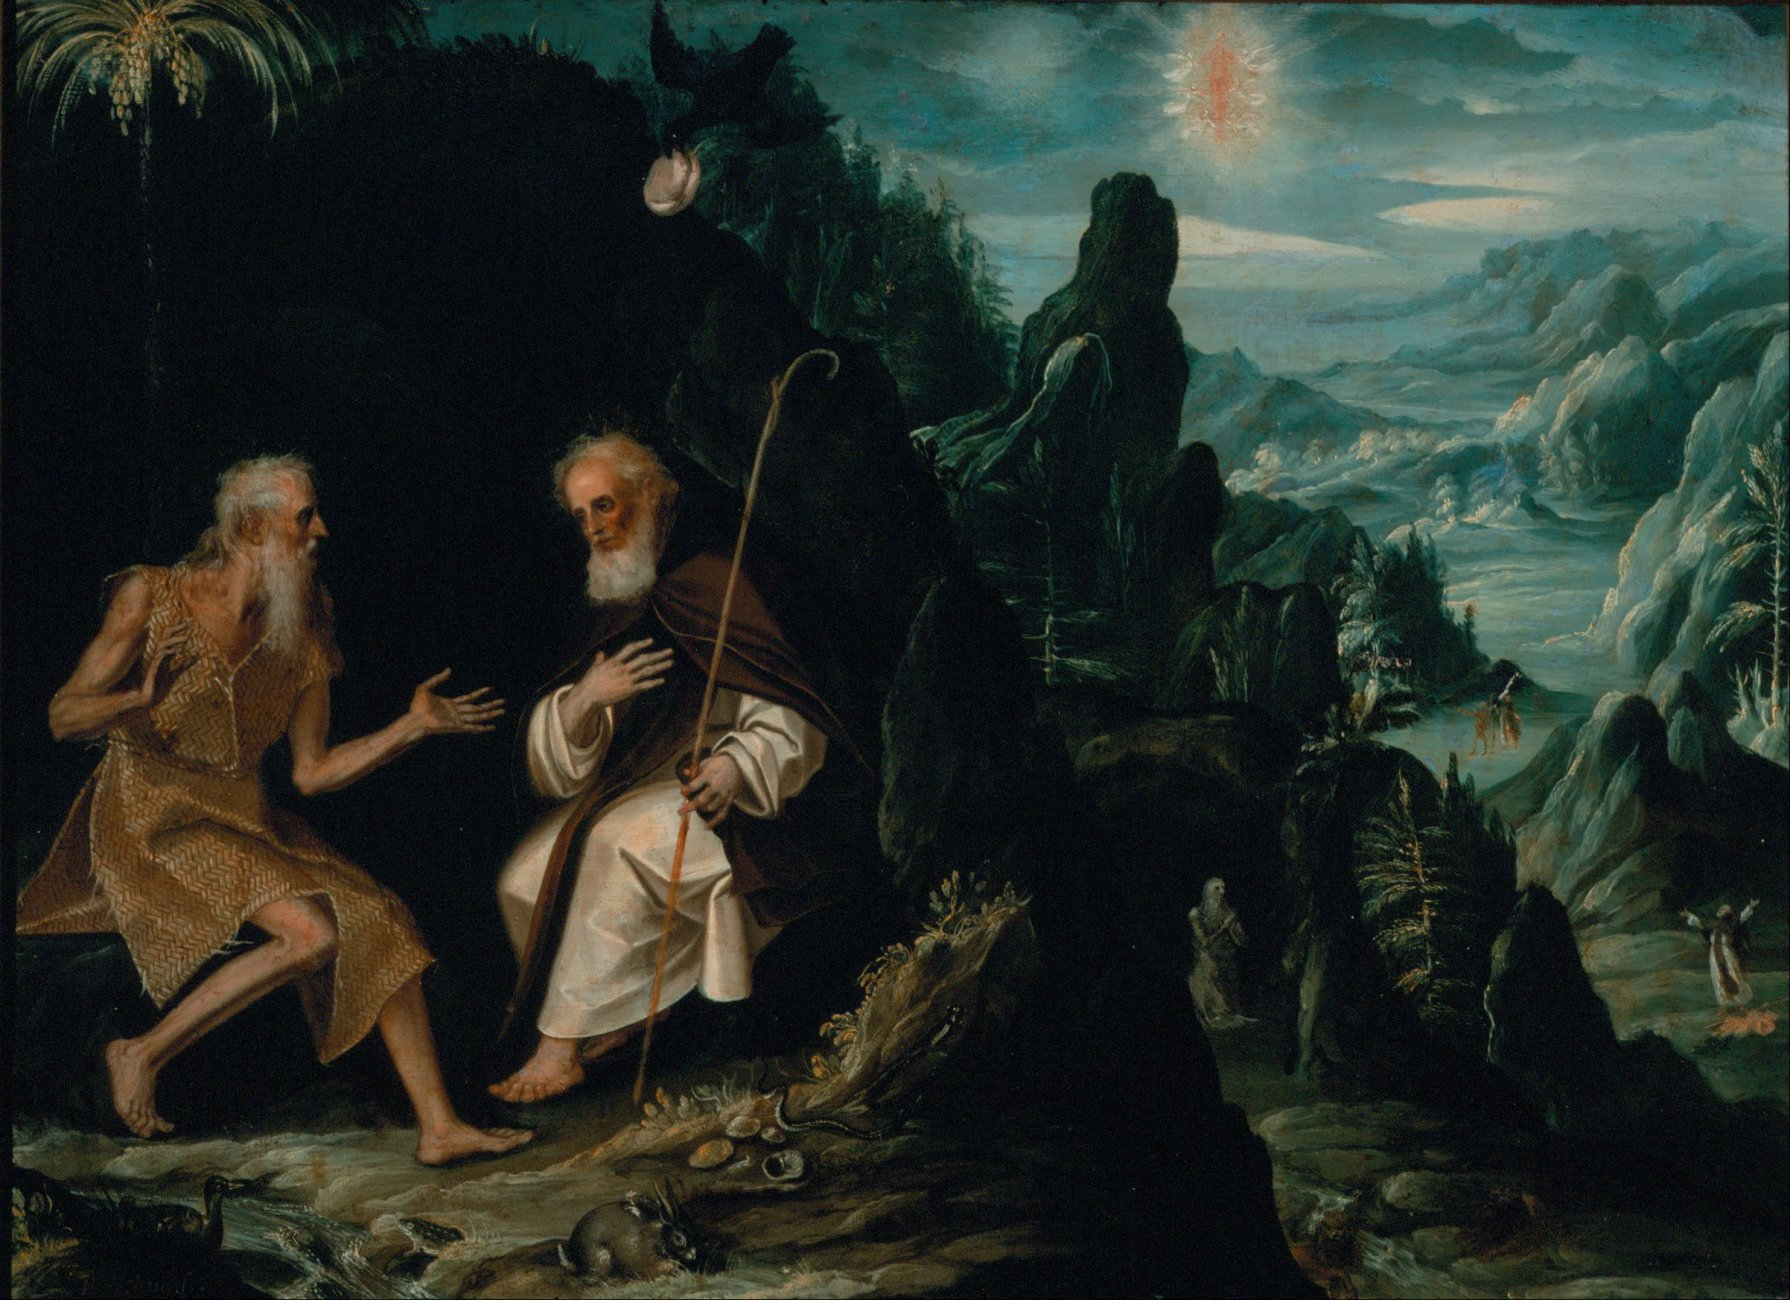 Baltasar_de_Echave_Ibía_-_The_Hermits,_Saint_Paul_and_Saint_Anthony_-_Google_Art_Project.jpg